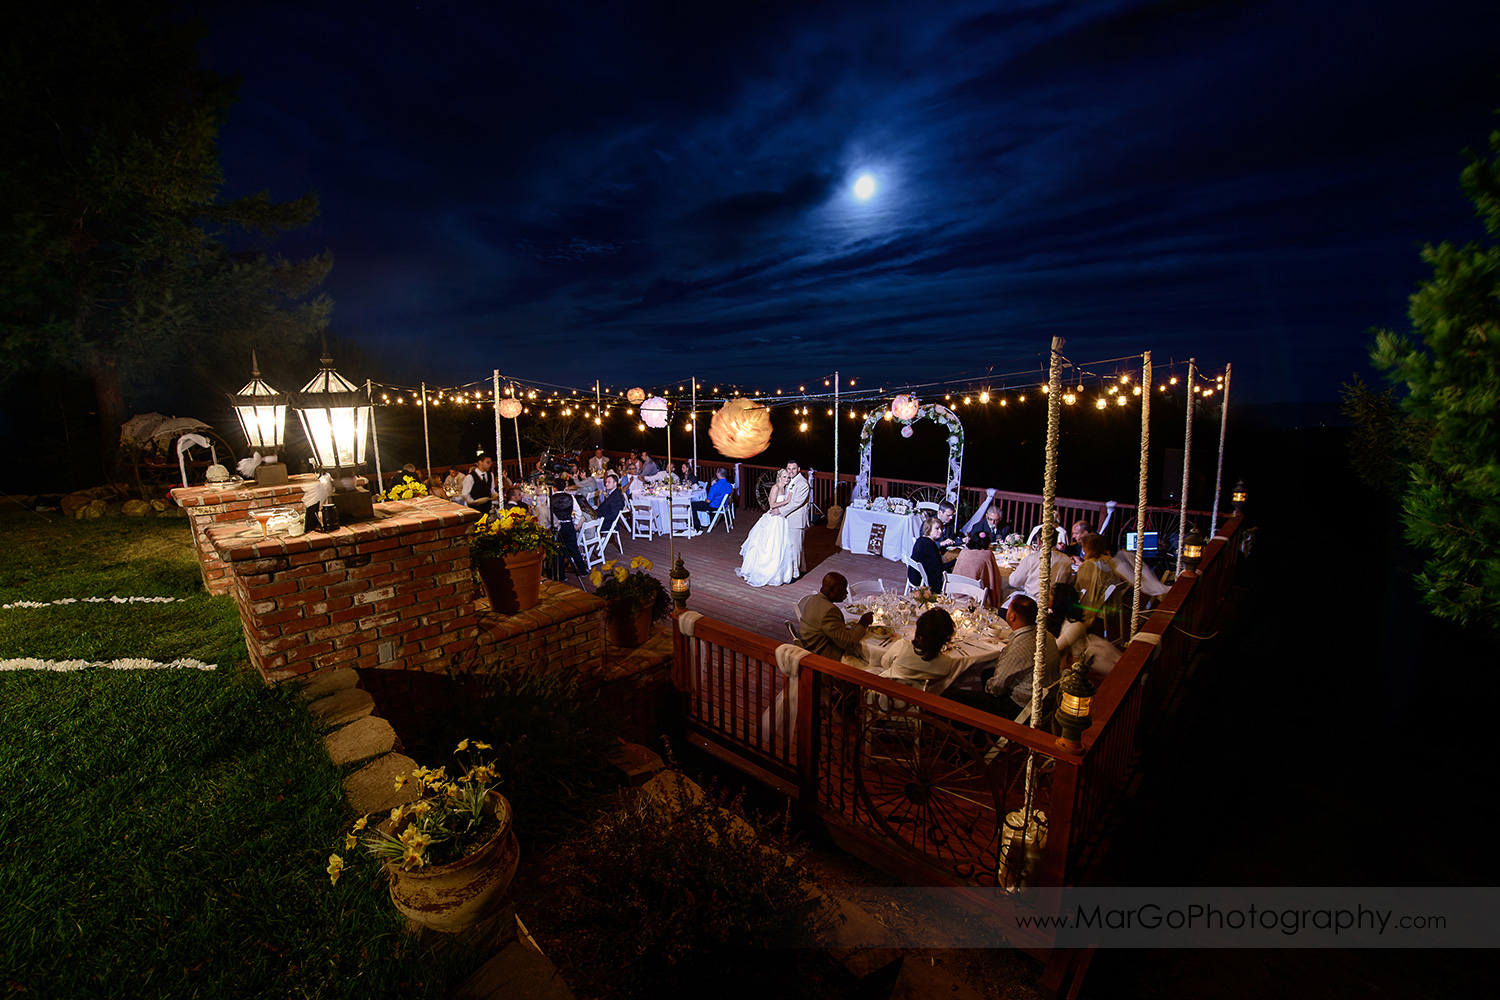 night shot of bride and groom standing in the middle of dance floor during backyard wedding reception